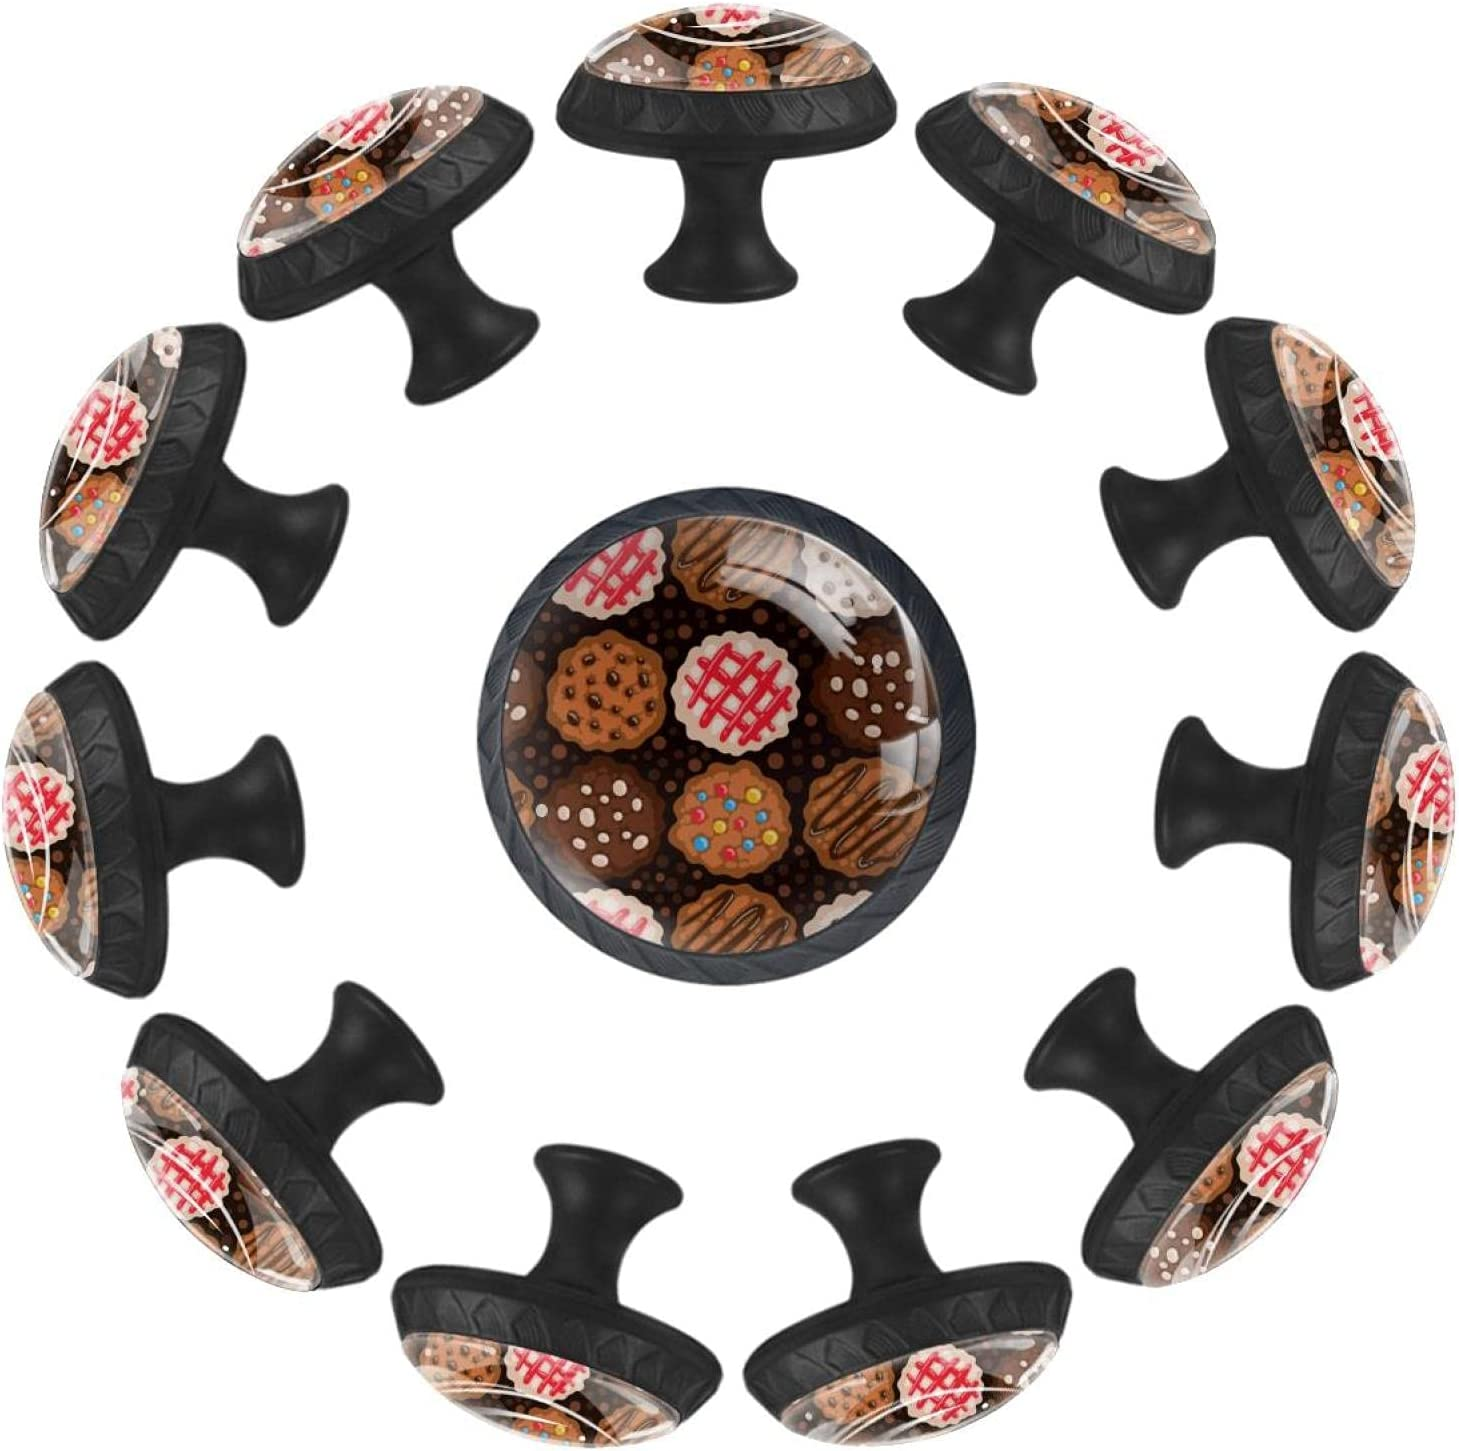 12 Pieces Denver Mall Chocolate Chip Cookies Knobs for Pattern Glass Dresser High quality new